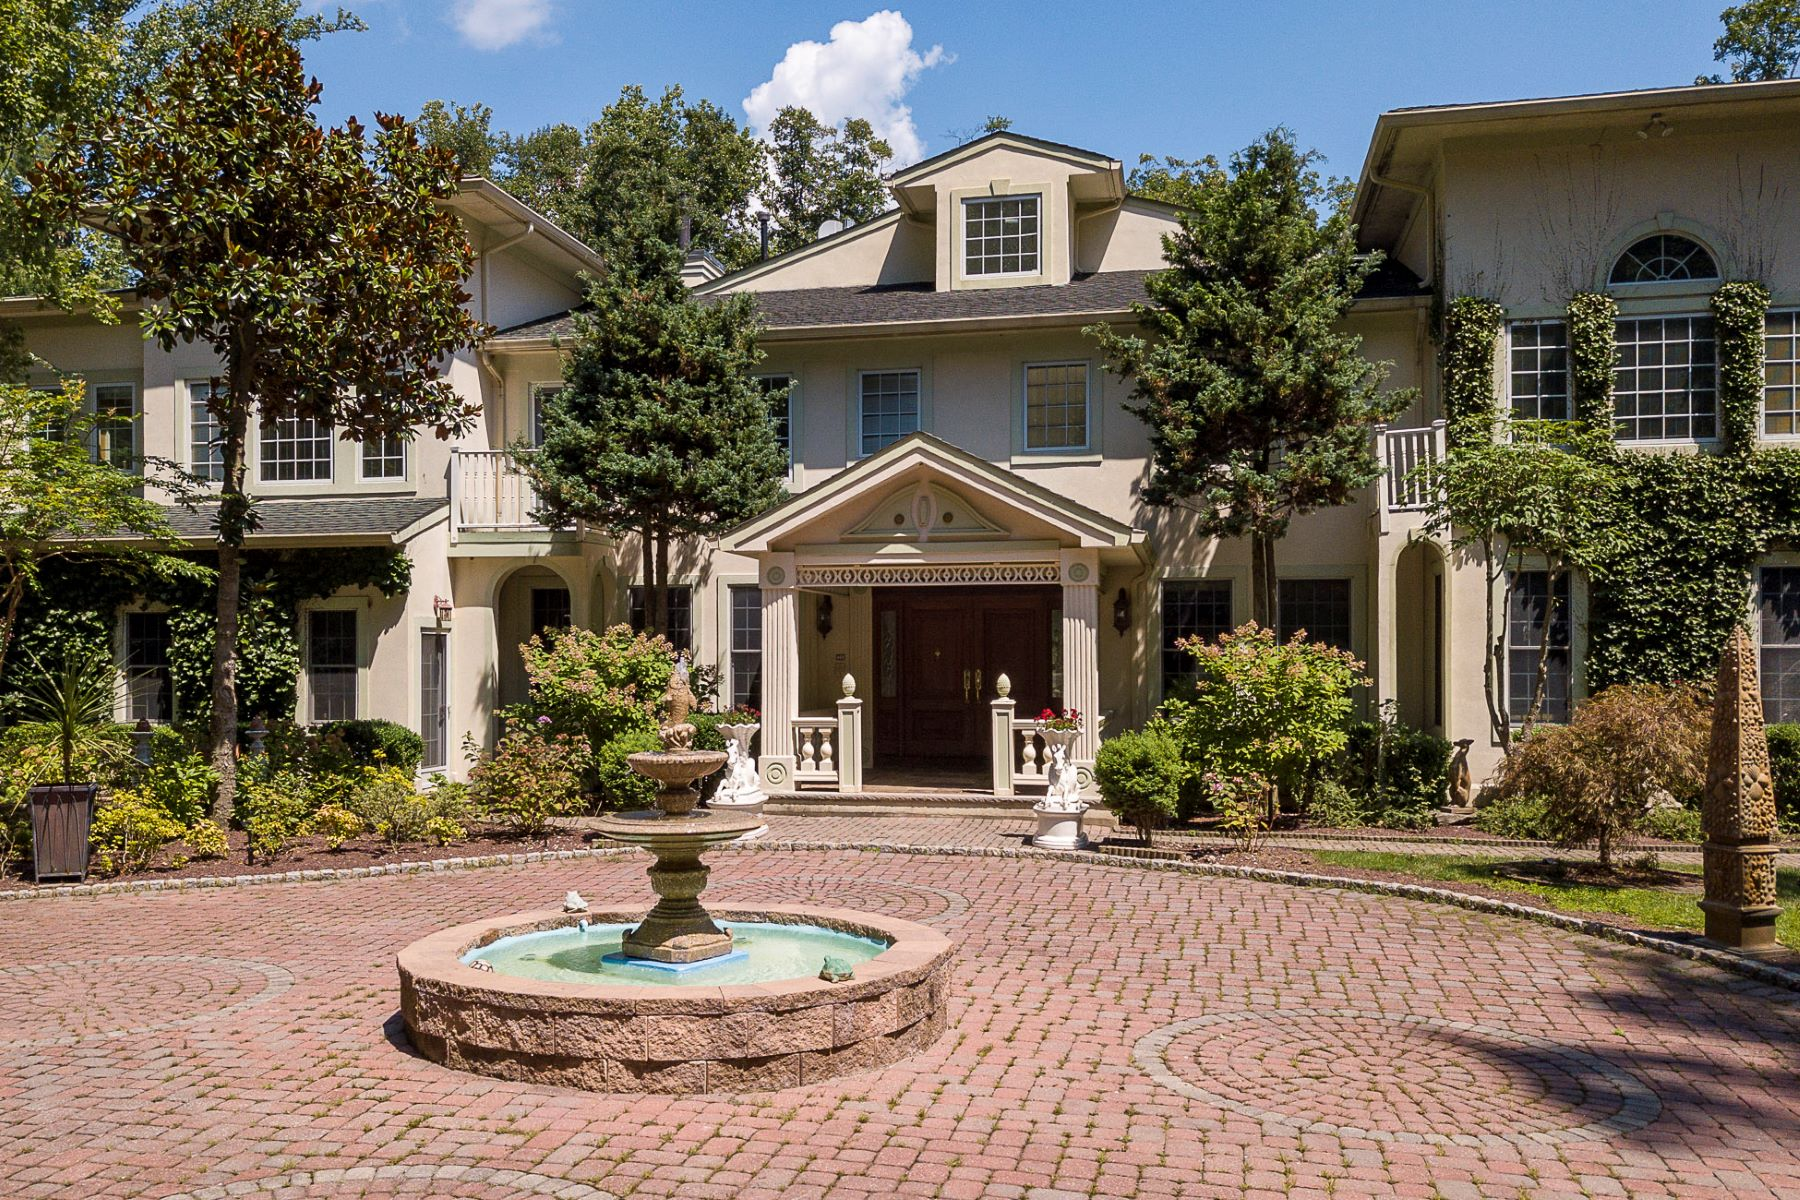 Property للـ Sale في A Sun-Drenched, European-Inspired Showplace, Lush Grounds, A Lavish Interior 76 Pettit Place, Princeton, New Jersey 08540 United States